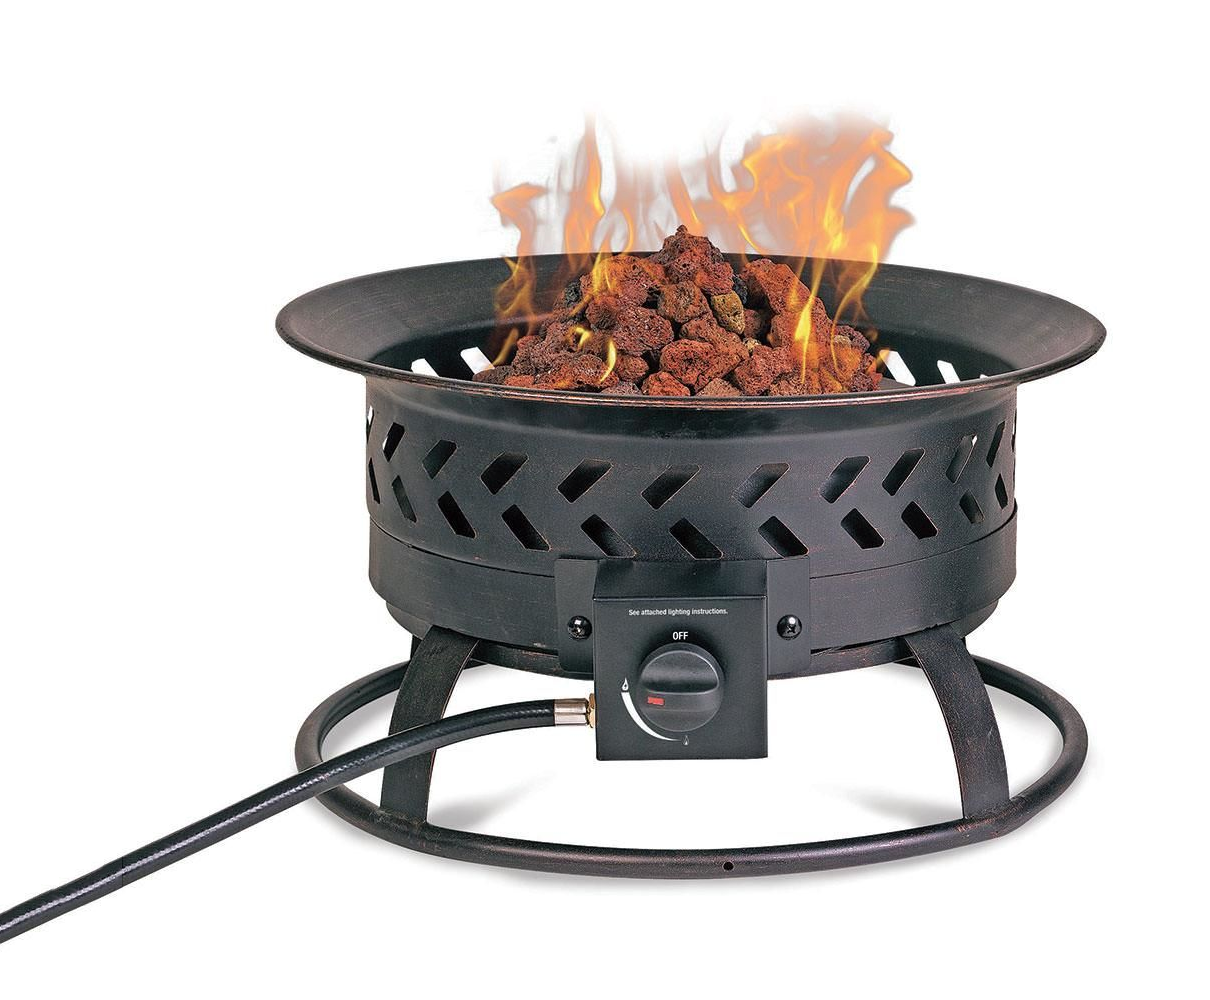 A small fire bowl provides ample space heating.